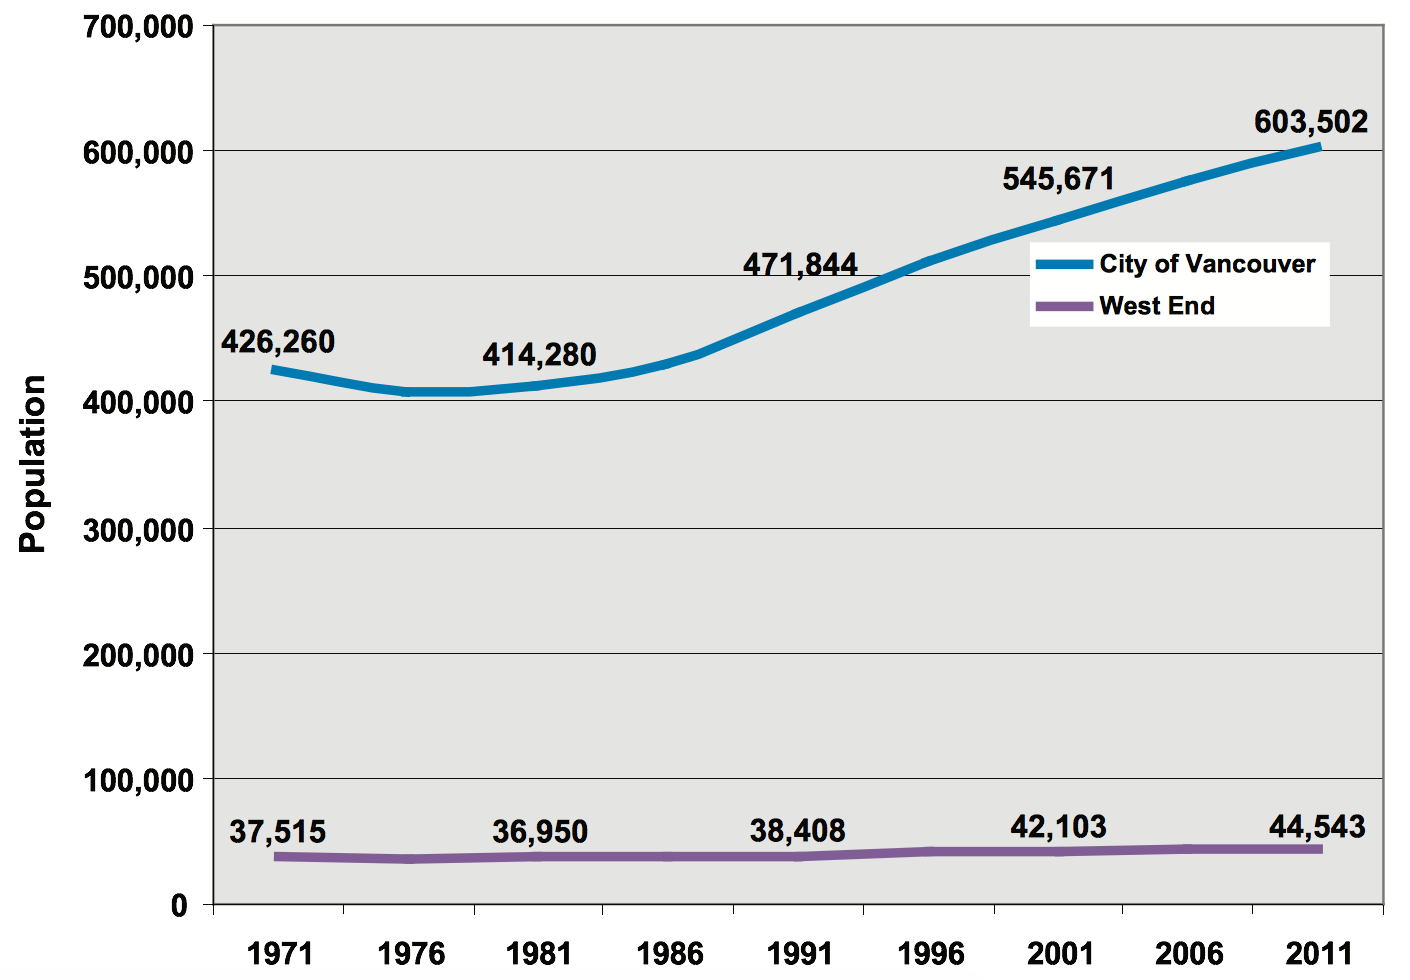 West End Population Growth 1970-2011